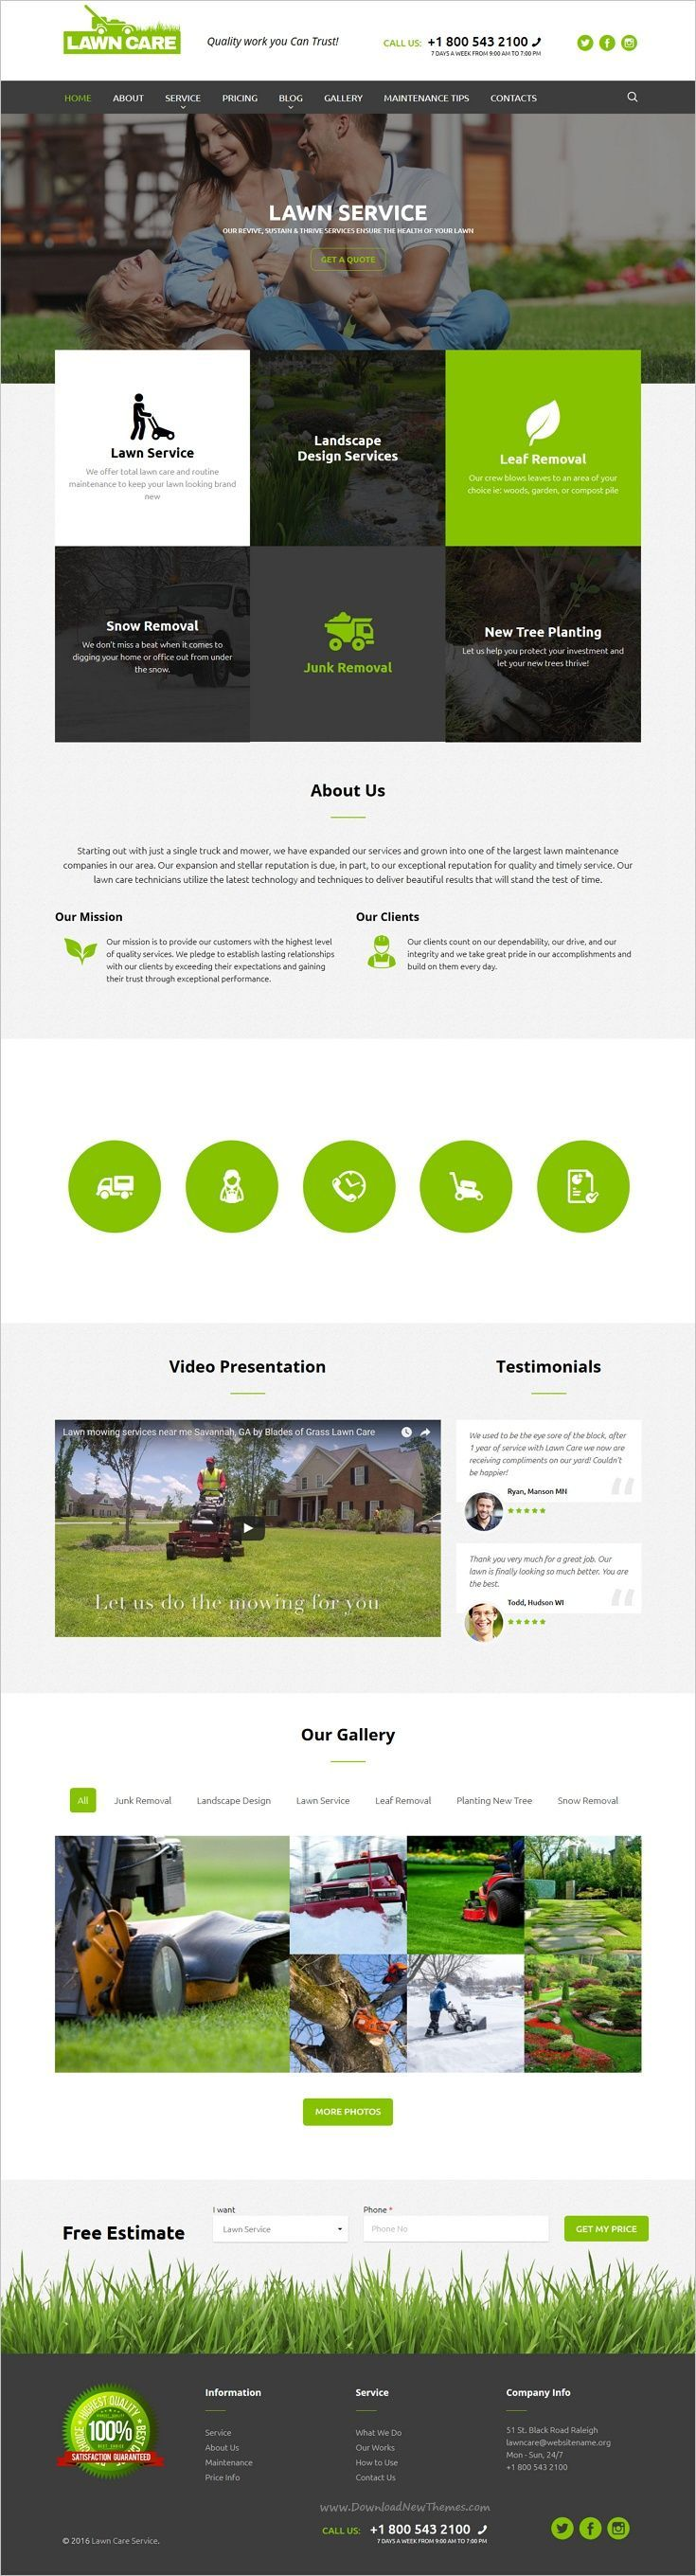 Lawn care is a wonderful responsive #WordPress theme for #gardening, #landscape design services websites download now➩ https://themeforest.net/item/lawn-care-services-wordpress-website-theme/19136039?ref=Datasata